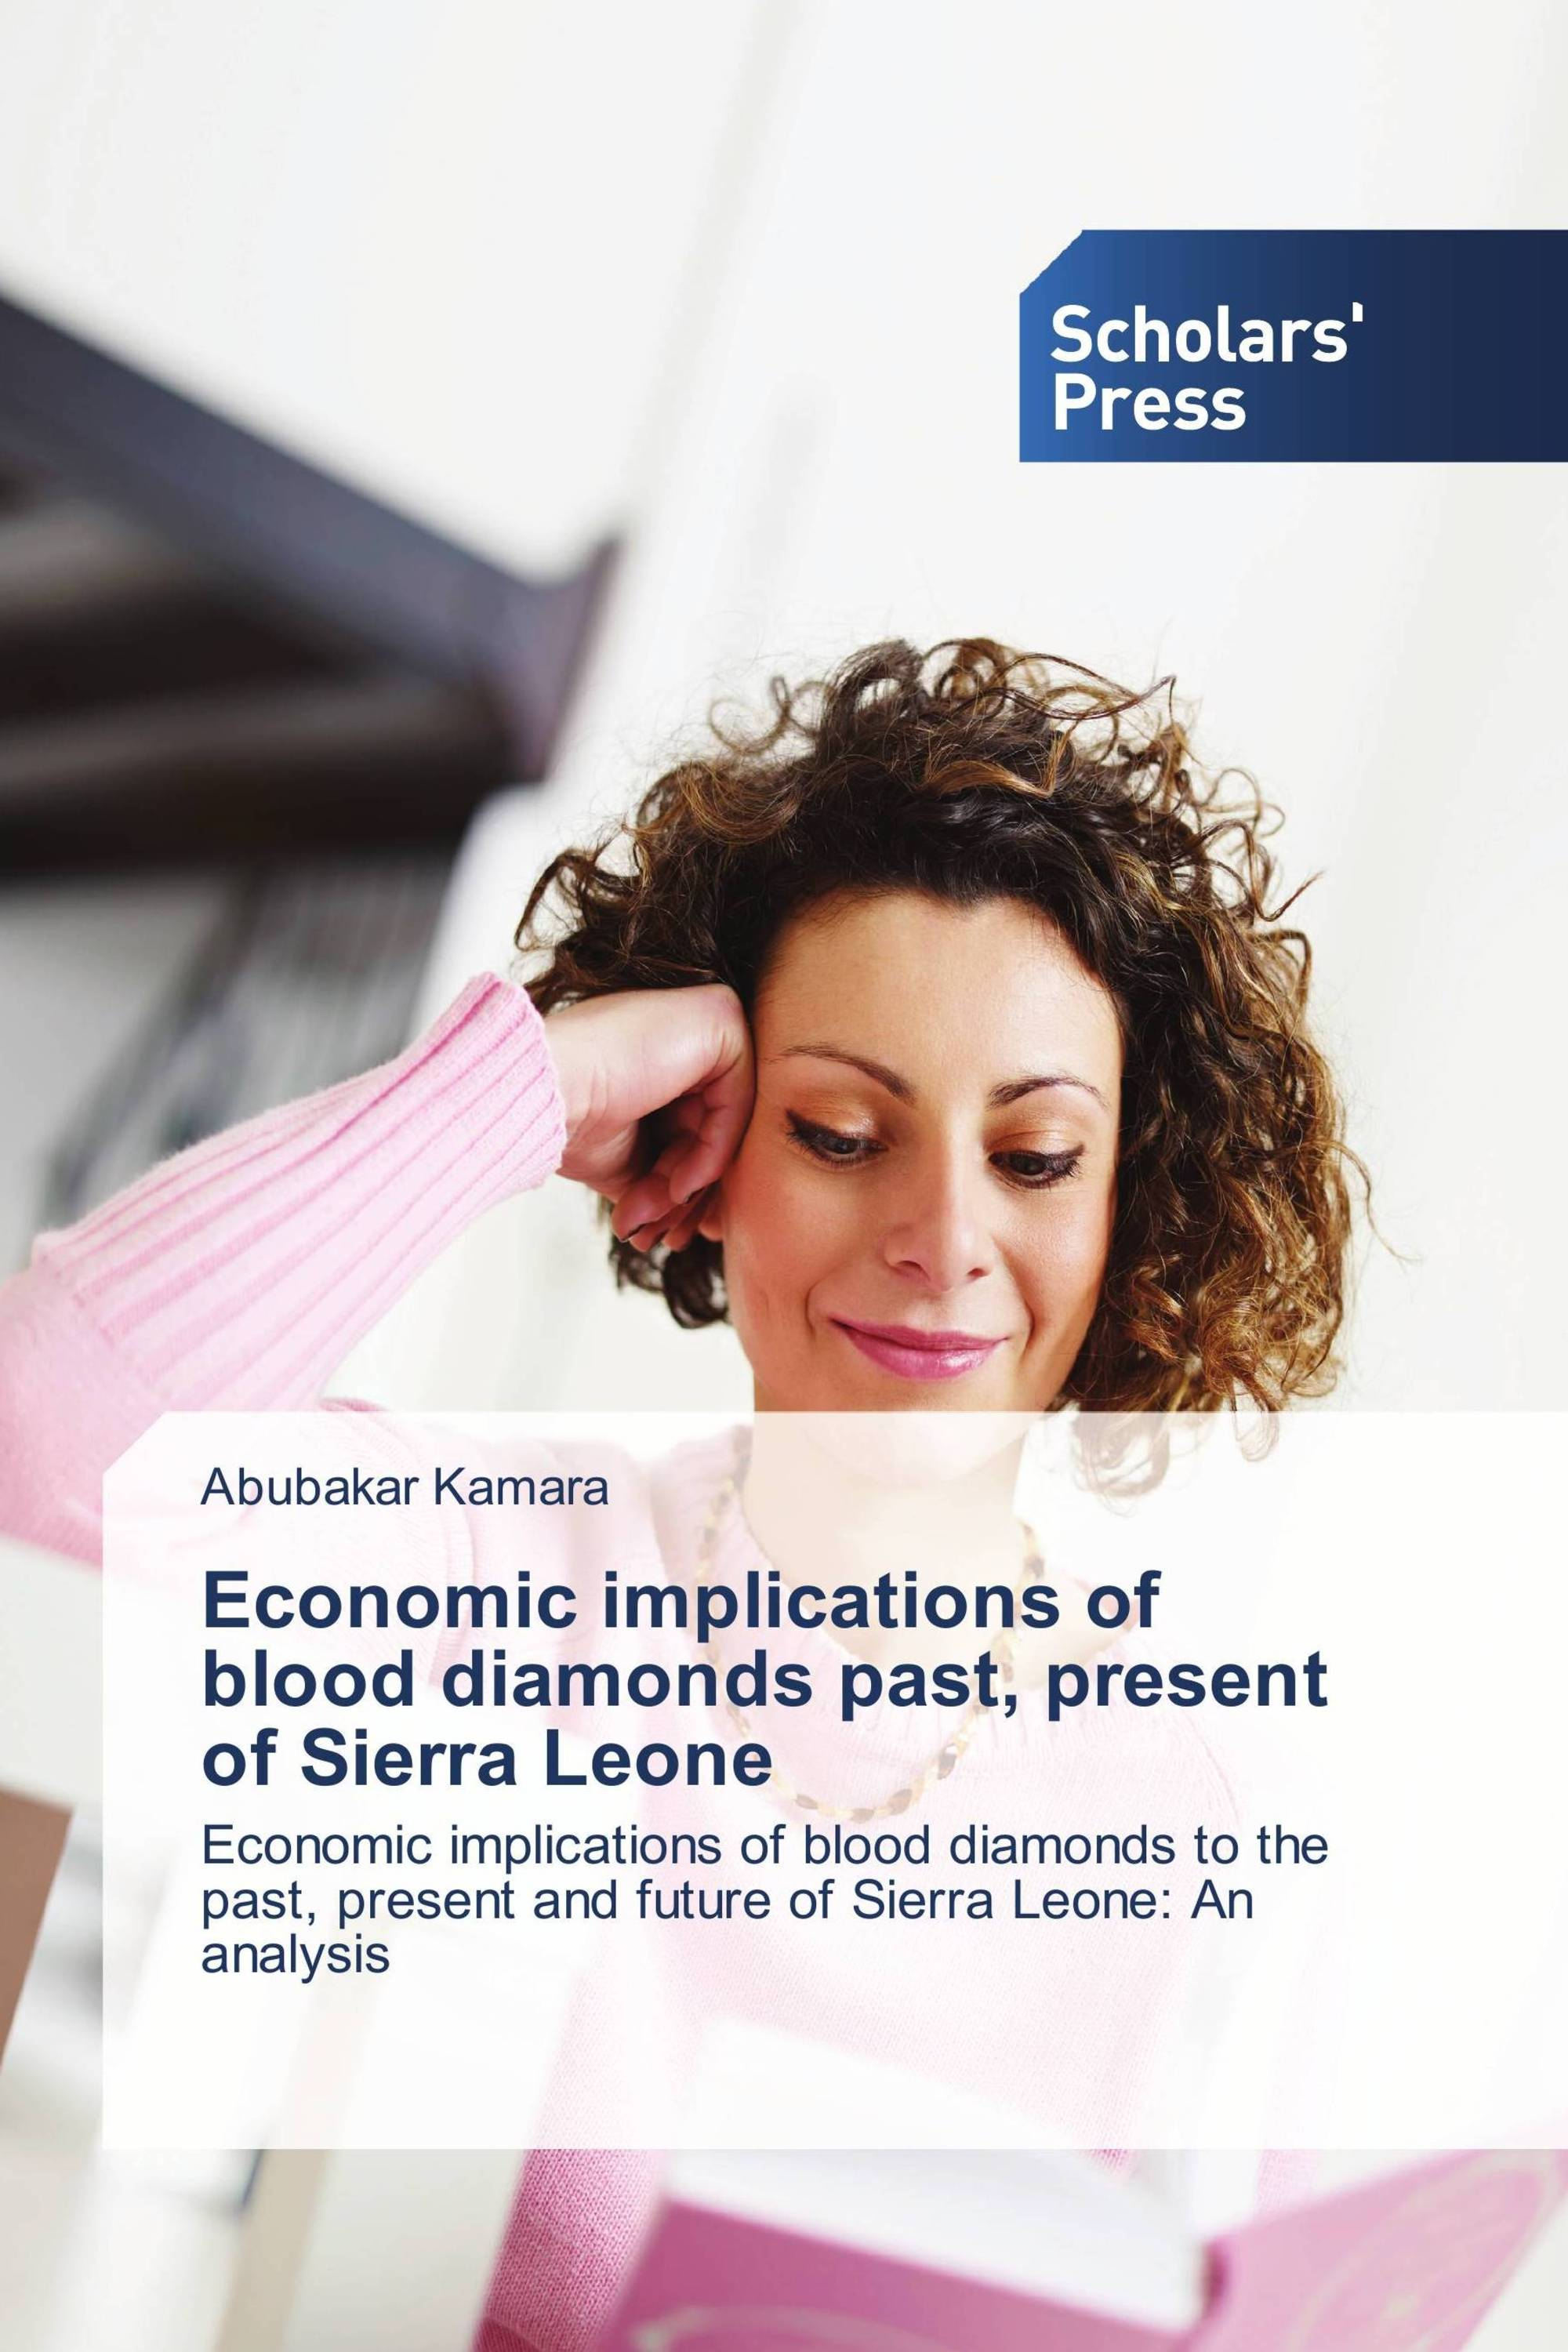 the economic problems of sierra leone Although sierra leone tends to view its petroleum potential through the prism of ghana's jubilee well, which is estimated to yield 12 to 2 billion barrels of petroleum, the highest estimates to date of yield from sierra leone offshore petroleum deposits are 500-700 million barrels.